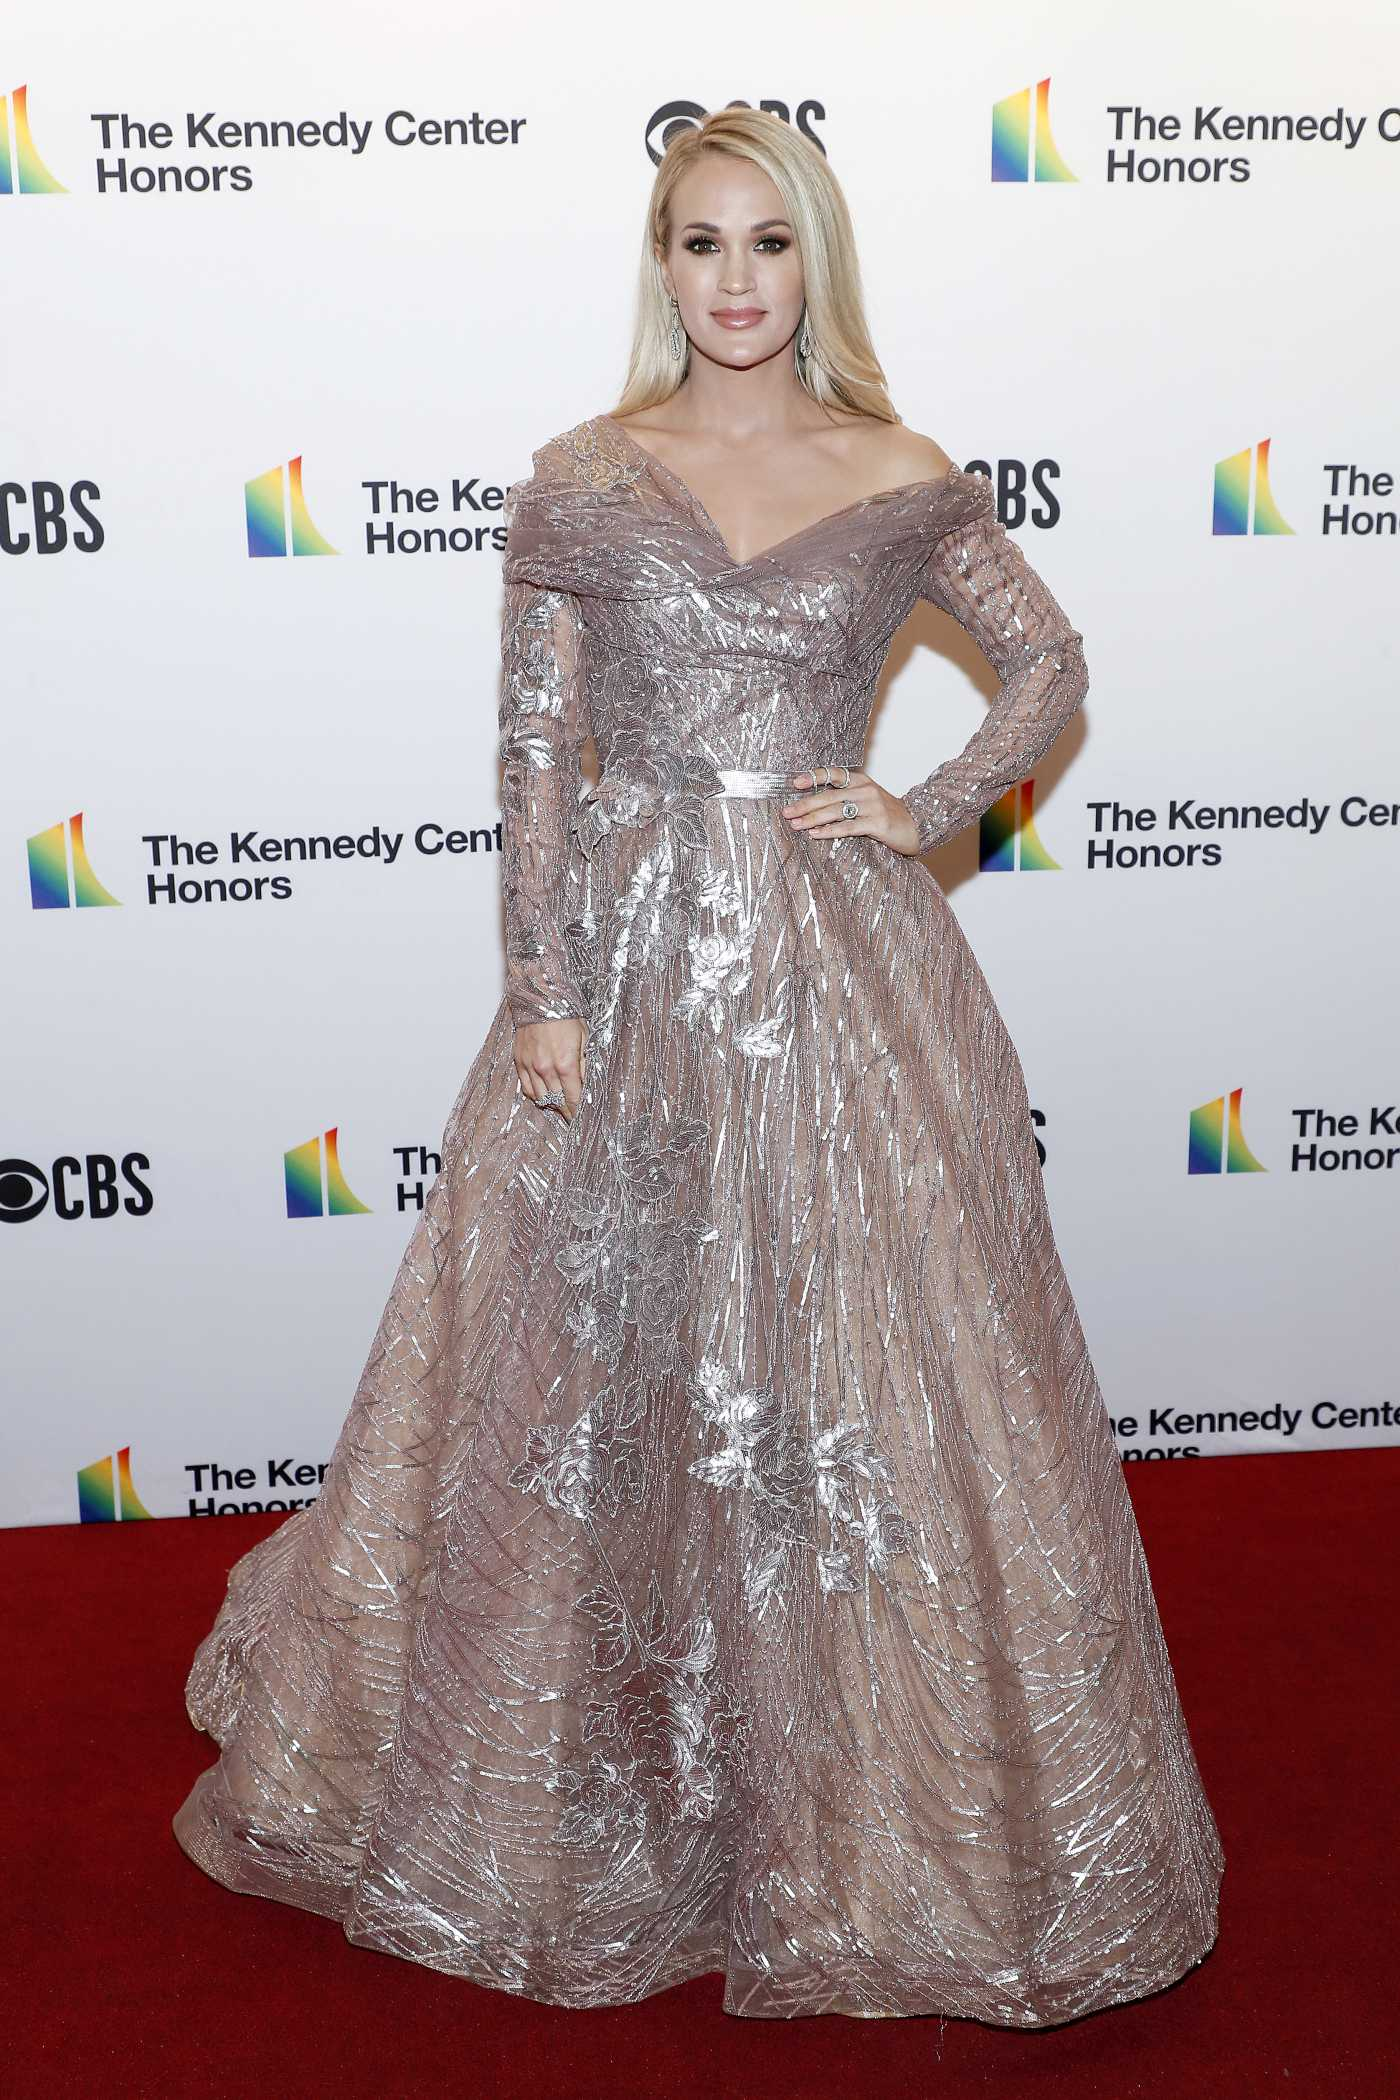 Carrie Underwood Attends 2019 Kennedy Center Honors at in Washington 12/08/2019